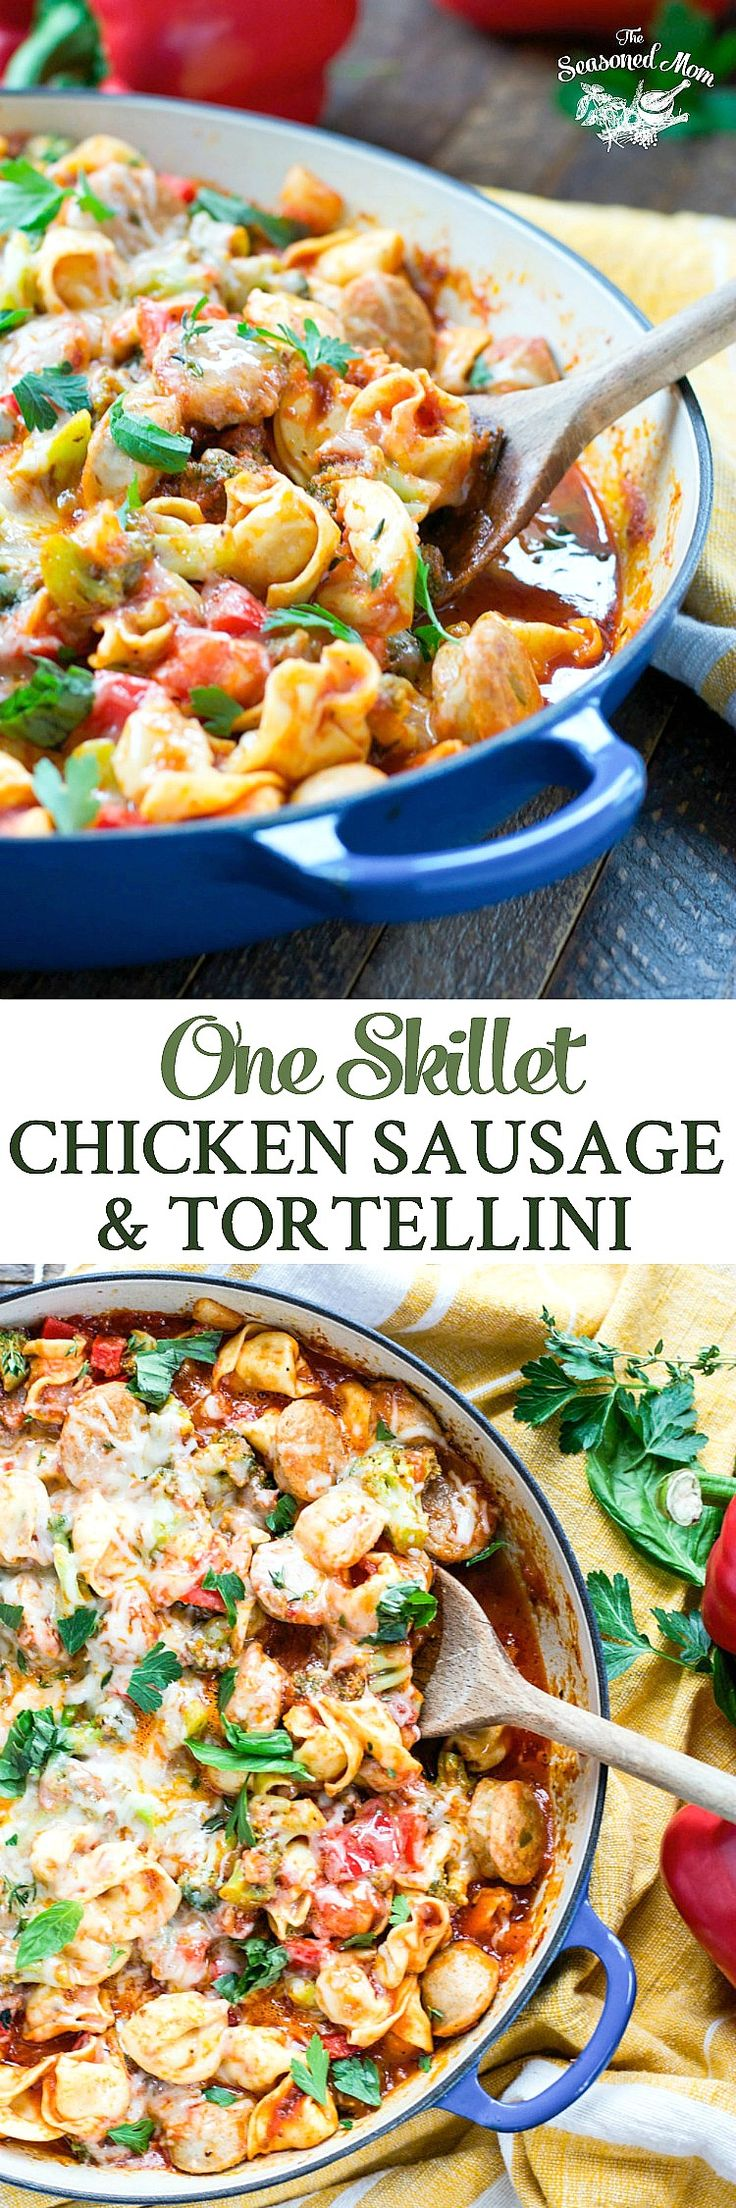 One Skillet Chicken Sausage and Tortellini is ready in less than 30 minutes! Dinner Recipes | Dinner Ideas | Pasta | Pasta Recipes | Tortellini Recipes